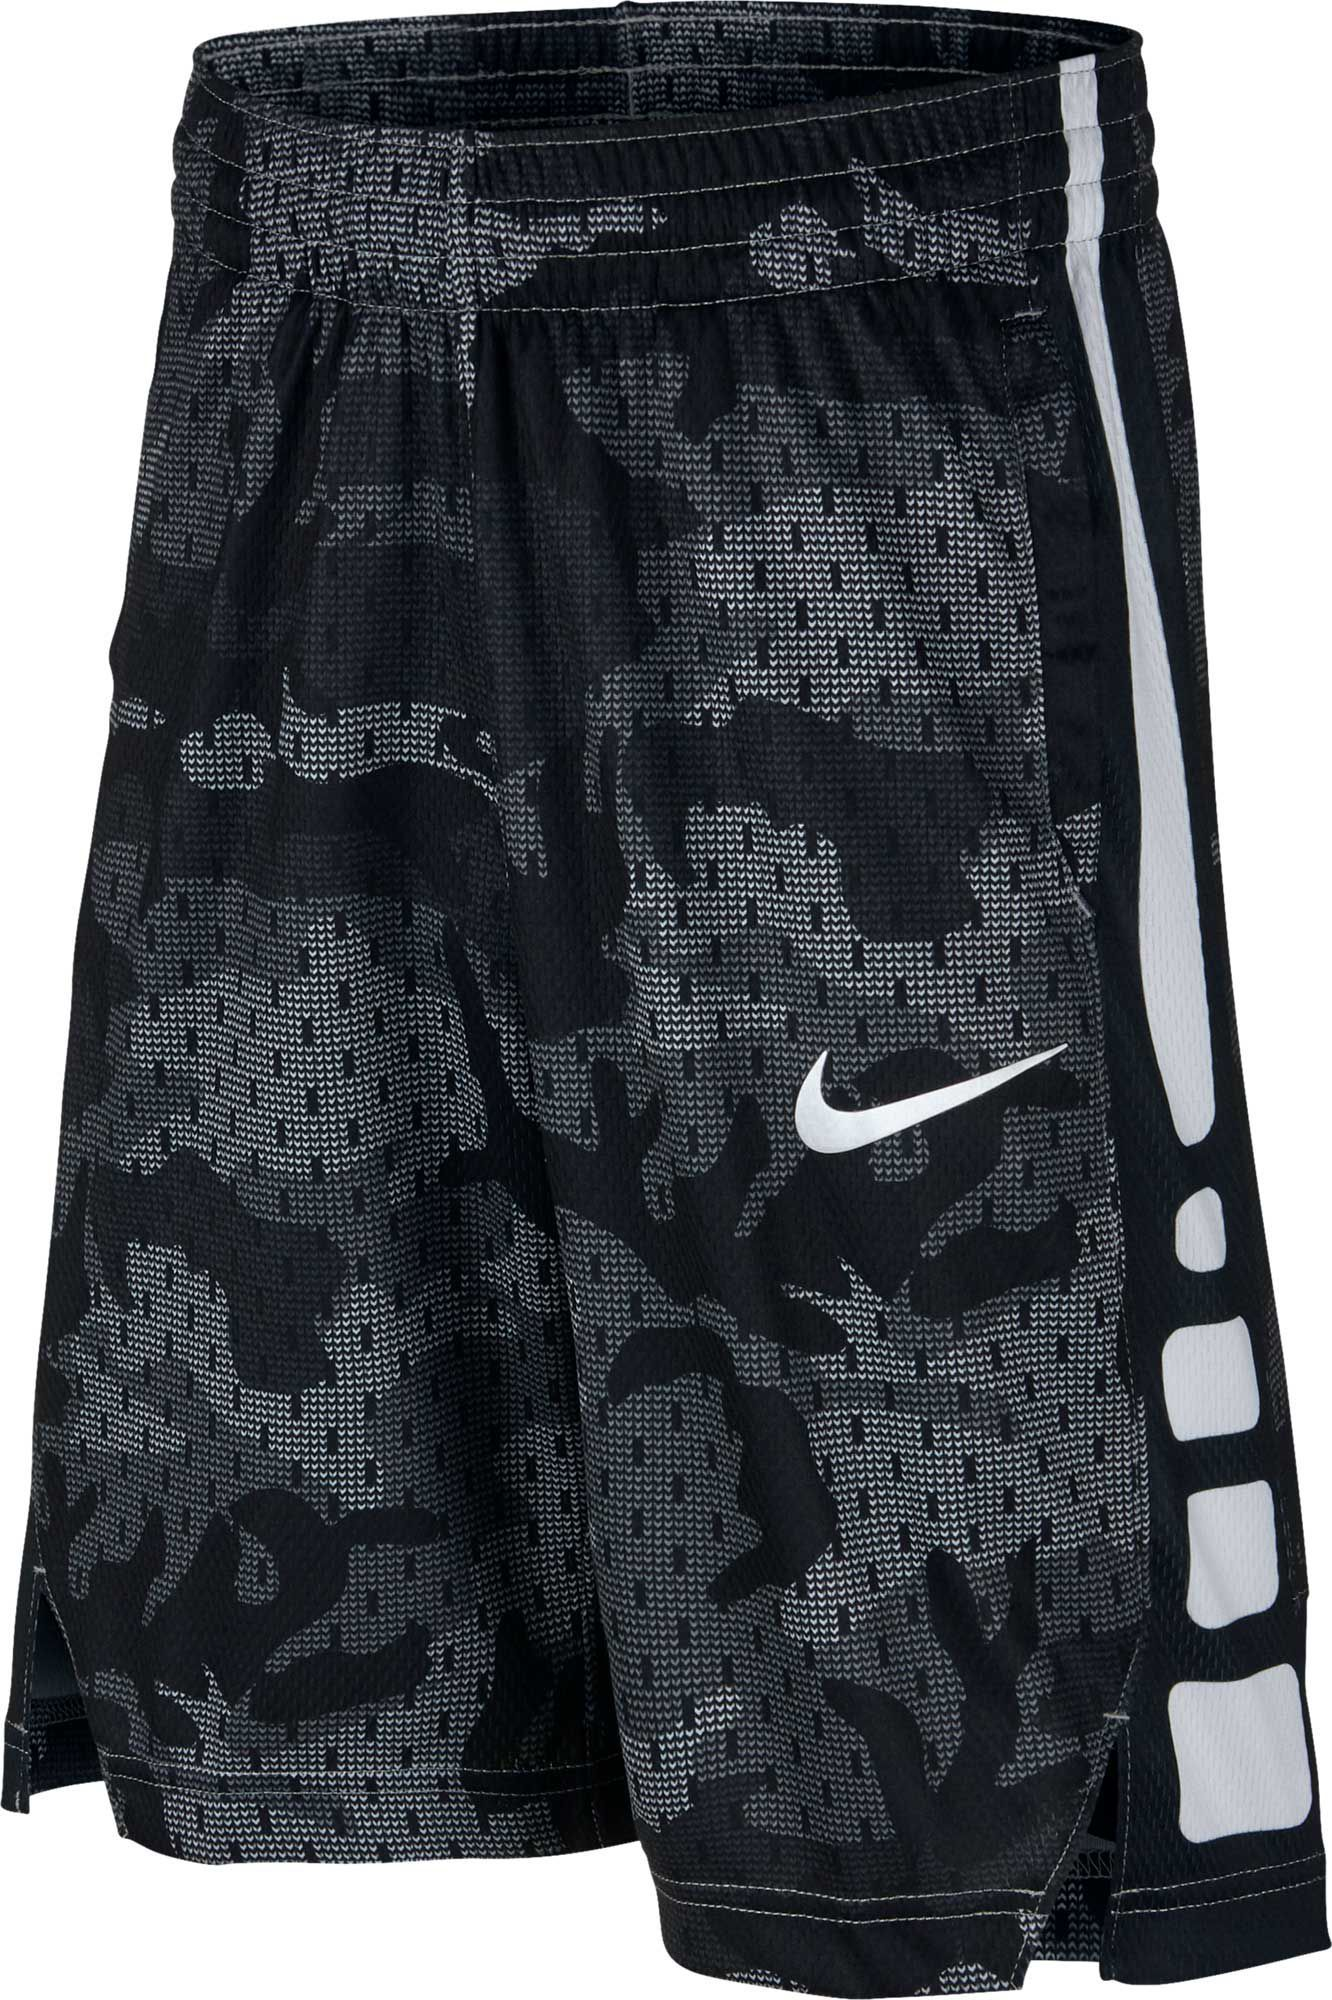 905b1ef566 Nike Boys' Dry Elite Camo Print Basketball Shorts in 2019 | Products ...